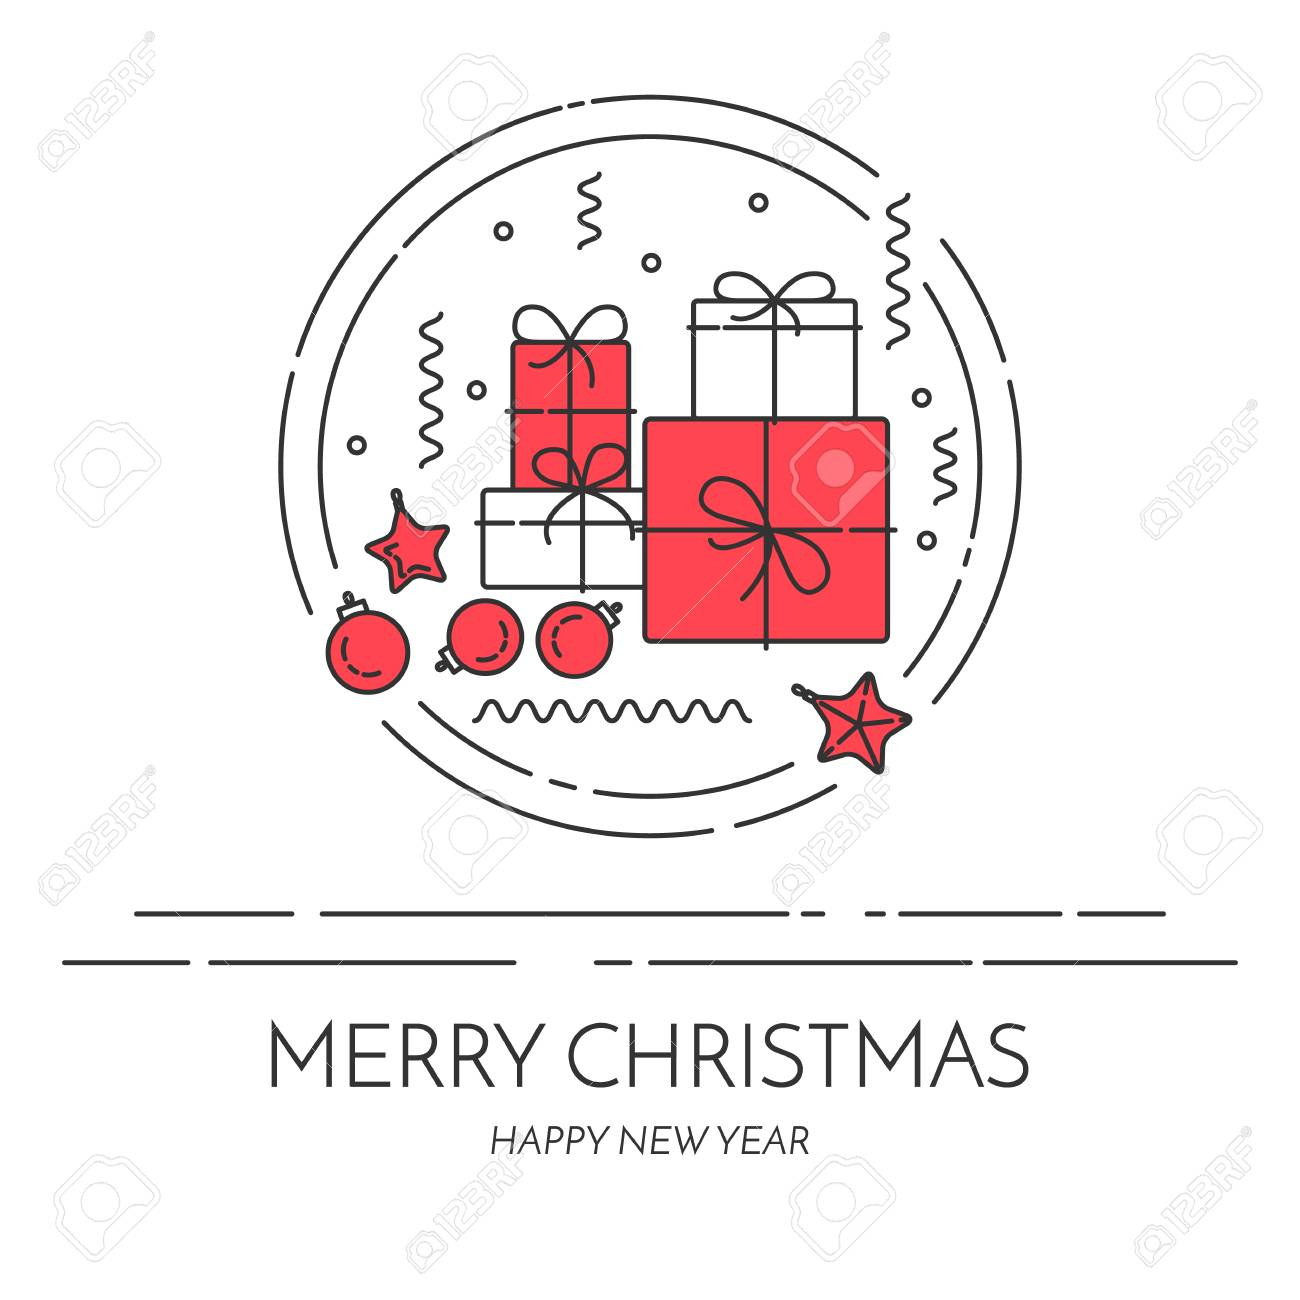 Christmas And New Year Horizontal Banner With Gifts And Decorations ...